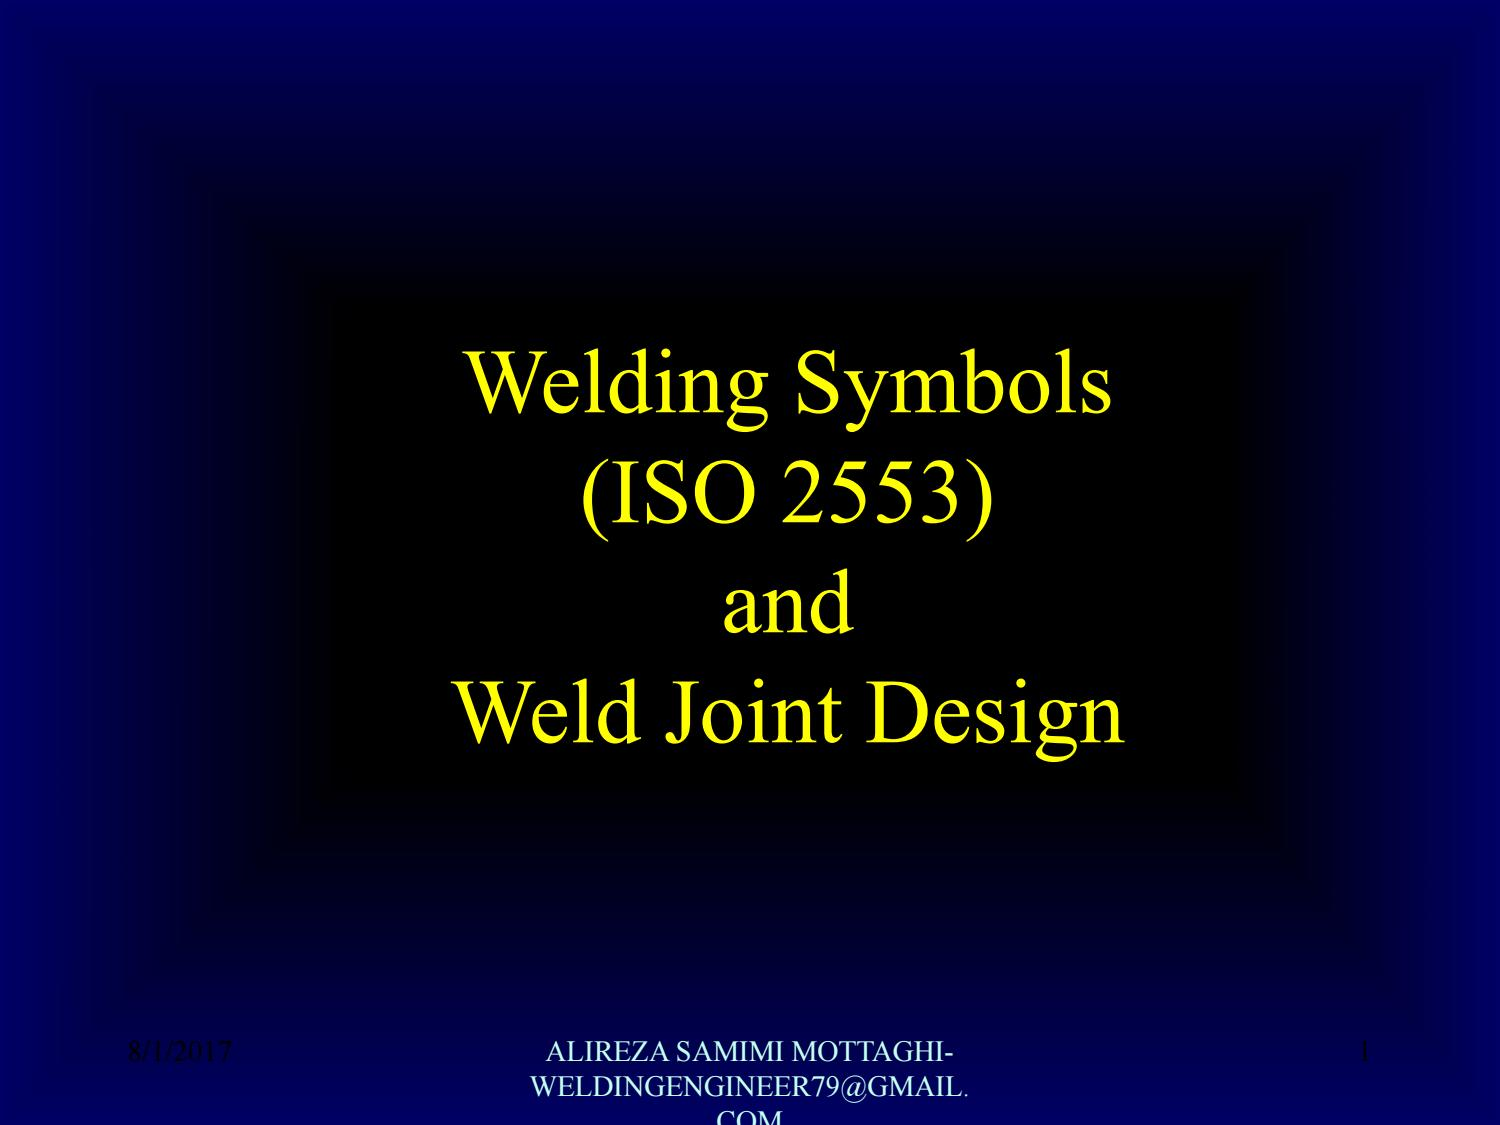 Welding symbols iso 2553 and weld joint design by alireza samimi welding symbols iso 2553 and weld joint design by alireza samimi mottaghi issuu buycottarizona Image collections